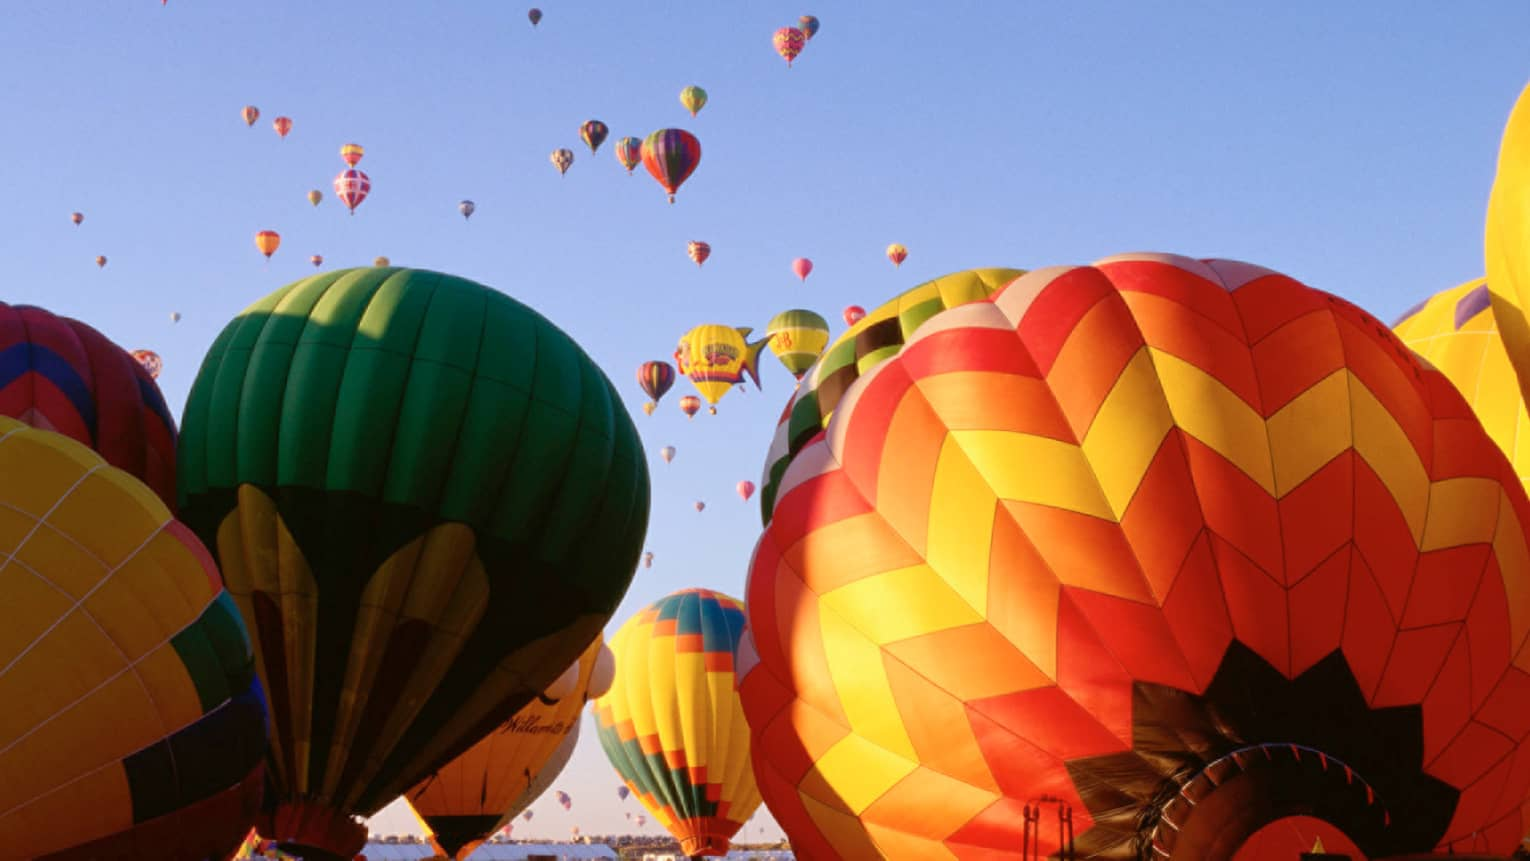 Clusters of colourful hot air balloons rising into blue sky